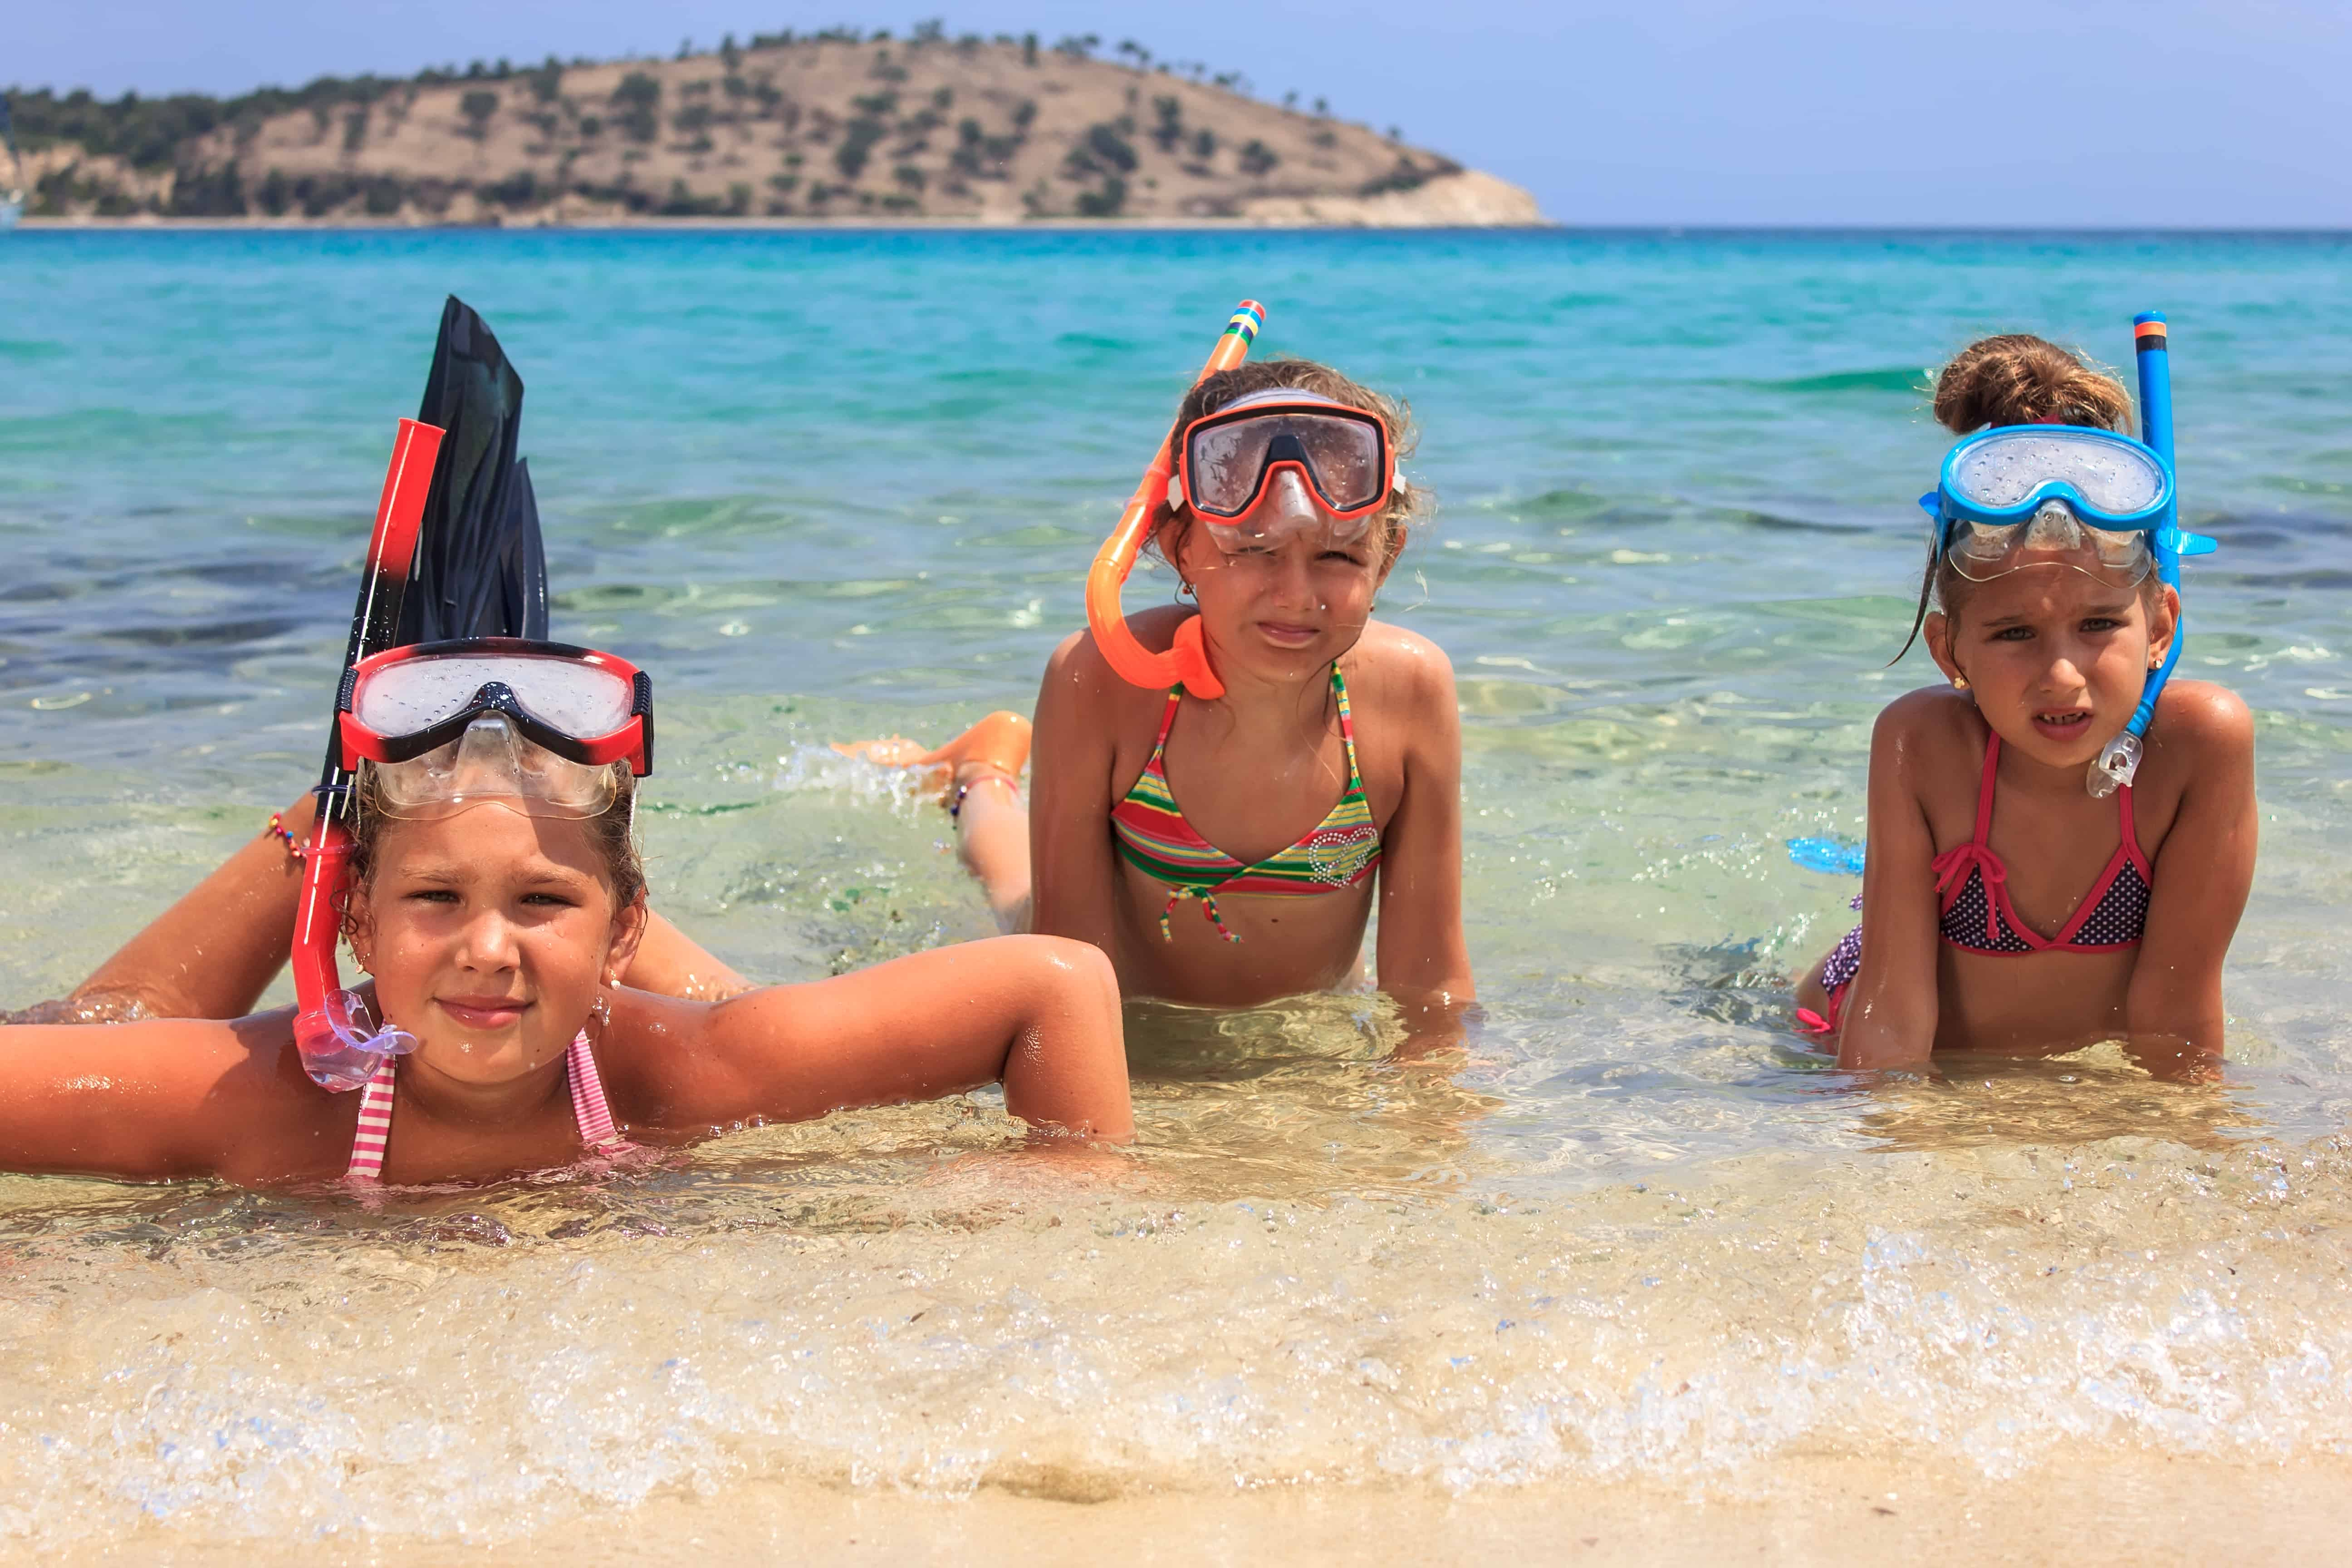 Three girls snorkeling in the ocean